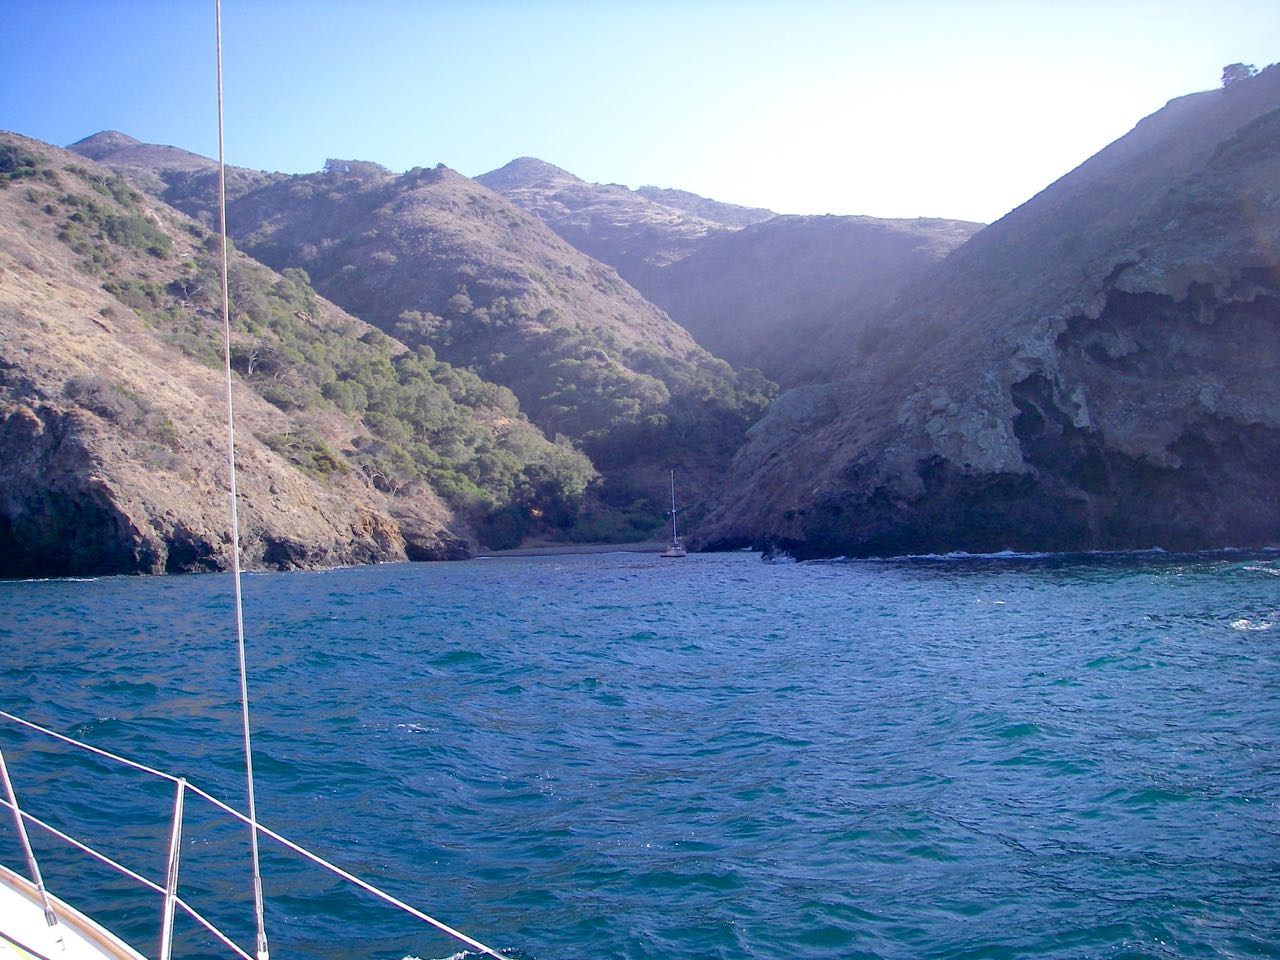 Sail to Ladys and Little Ladys anchorage on Santa Cruz Island with Capt. Dan Ryder and Sail Channel Islands